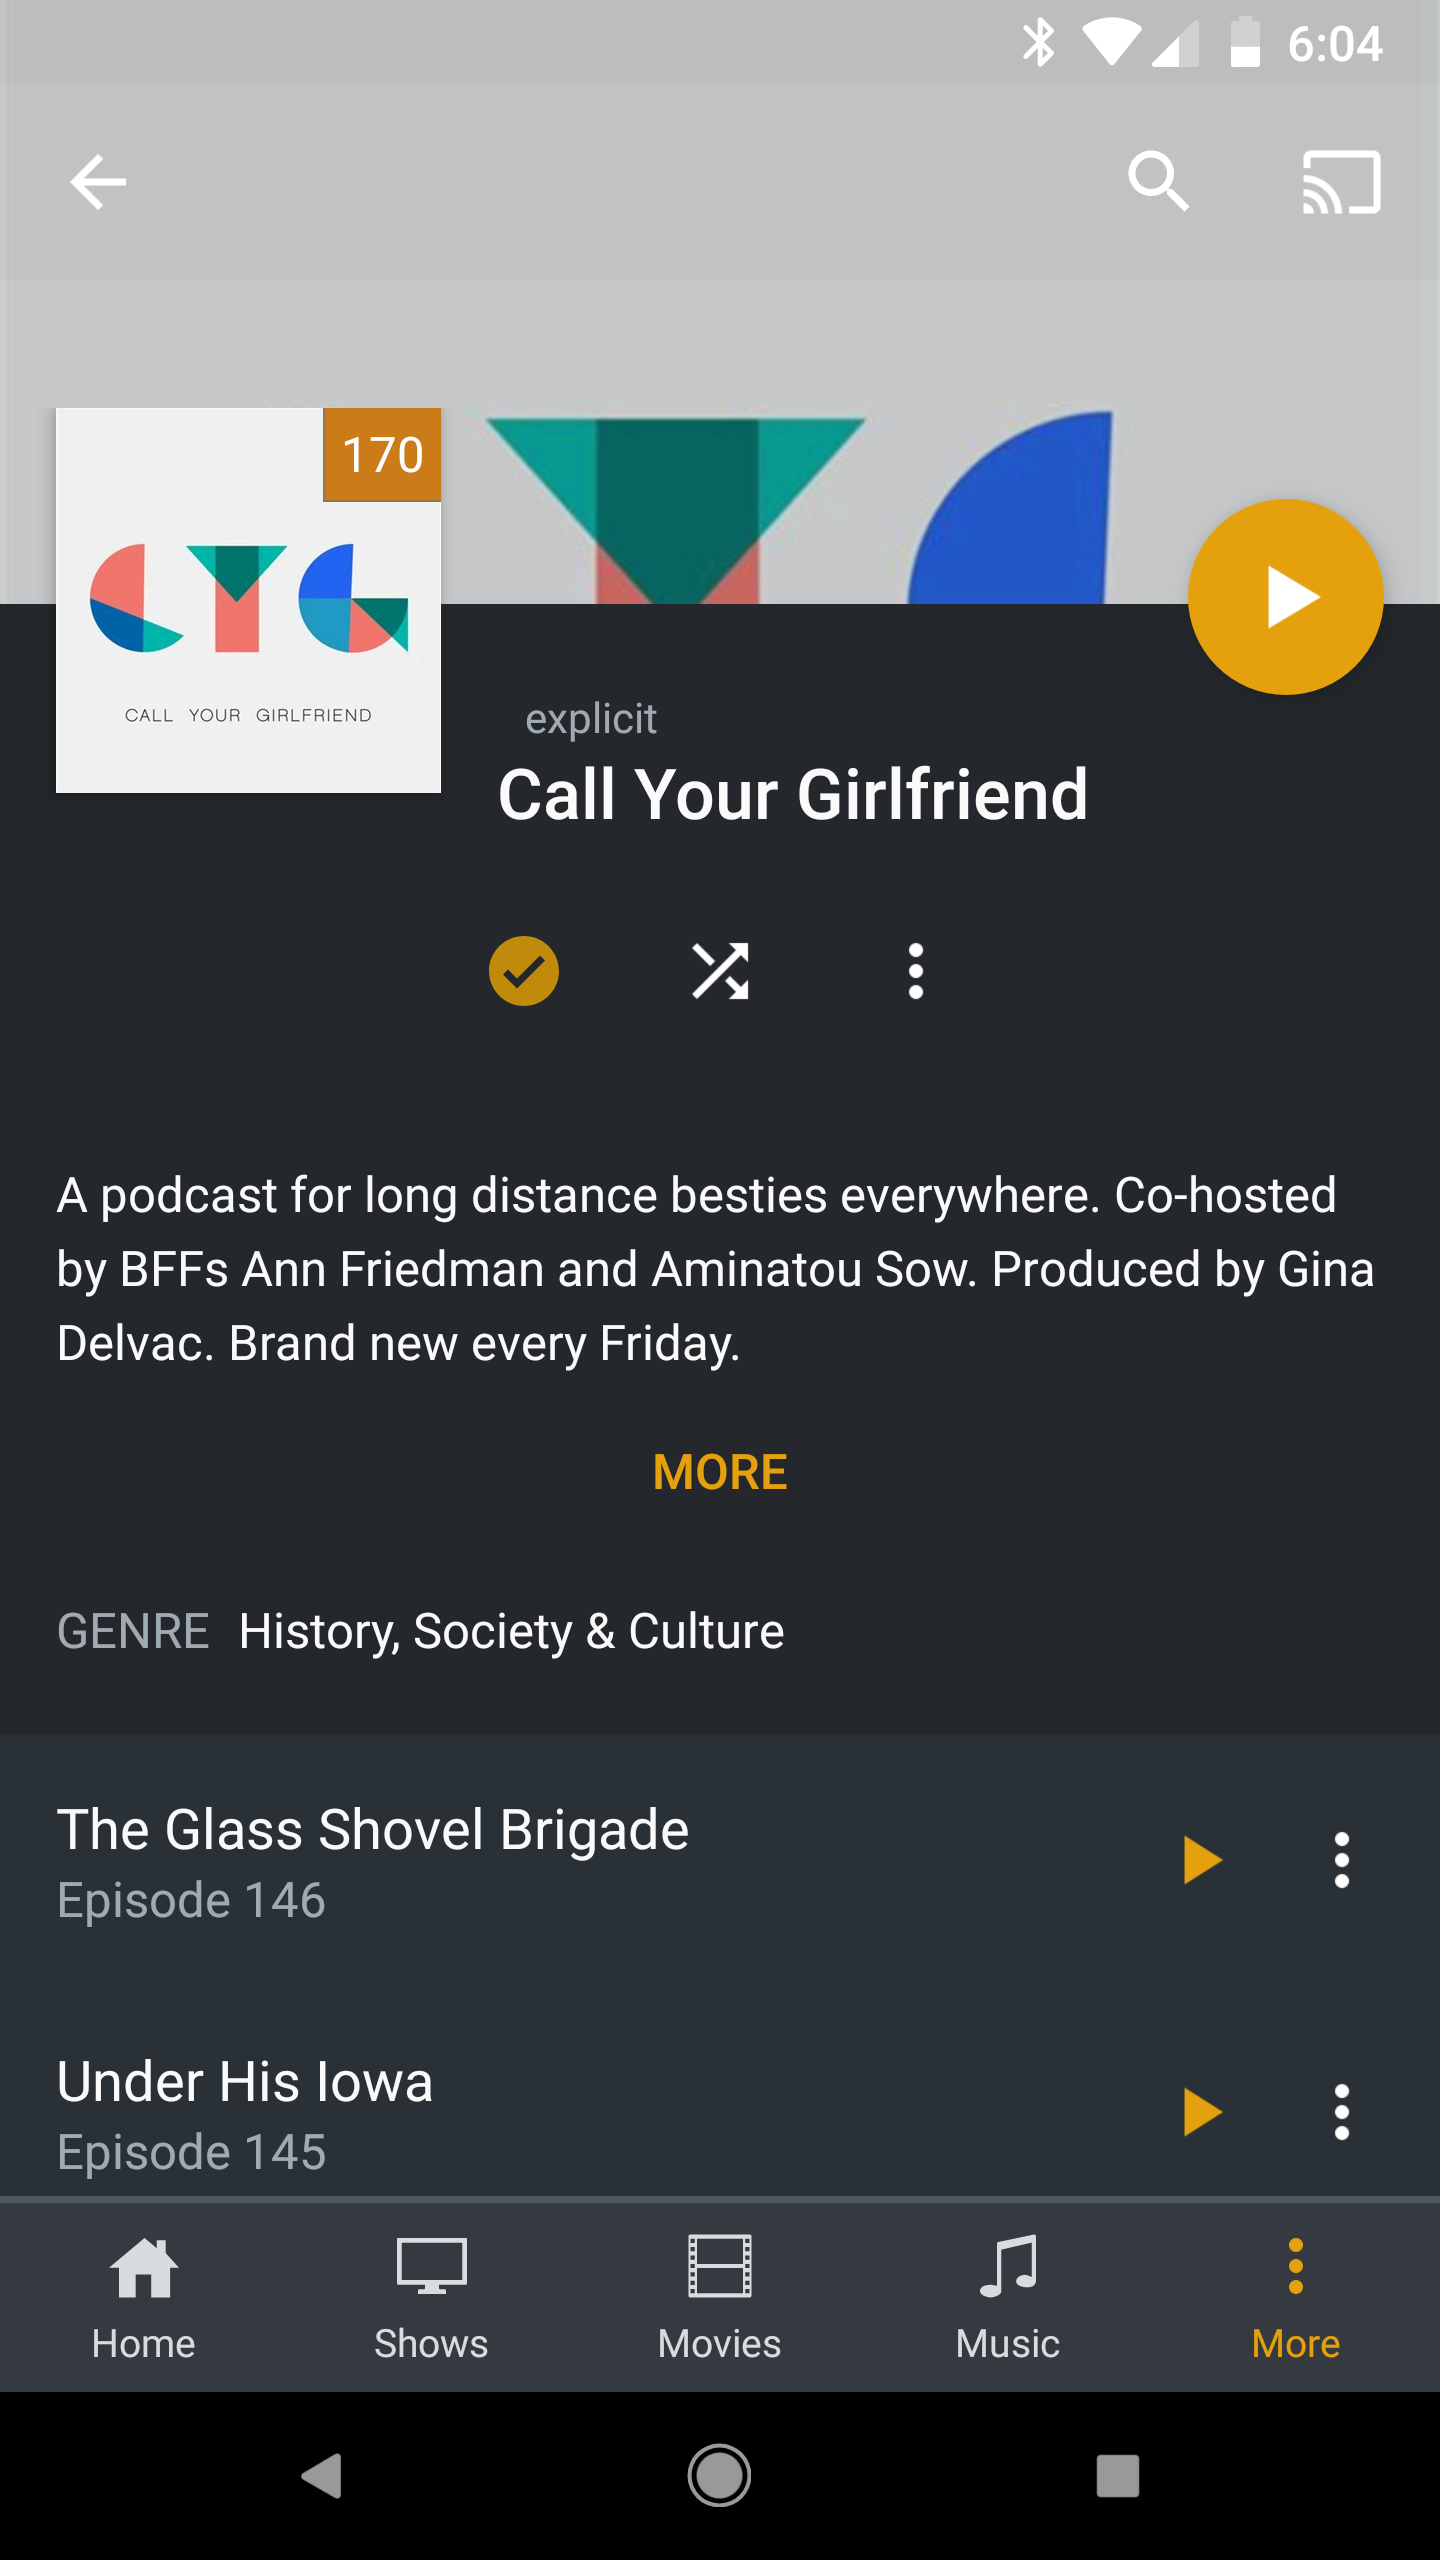 Plex overhauls mobile app with customizable home screen, podcast